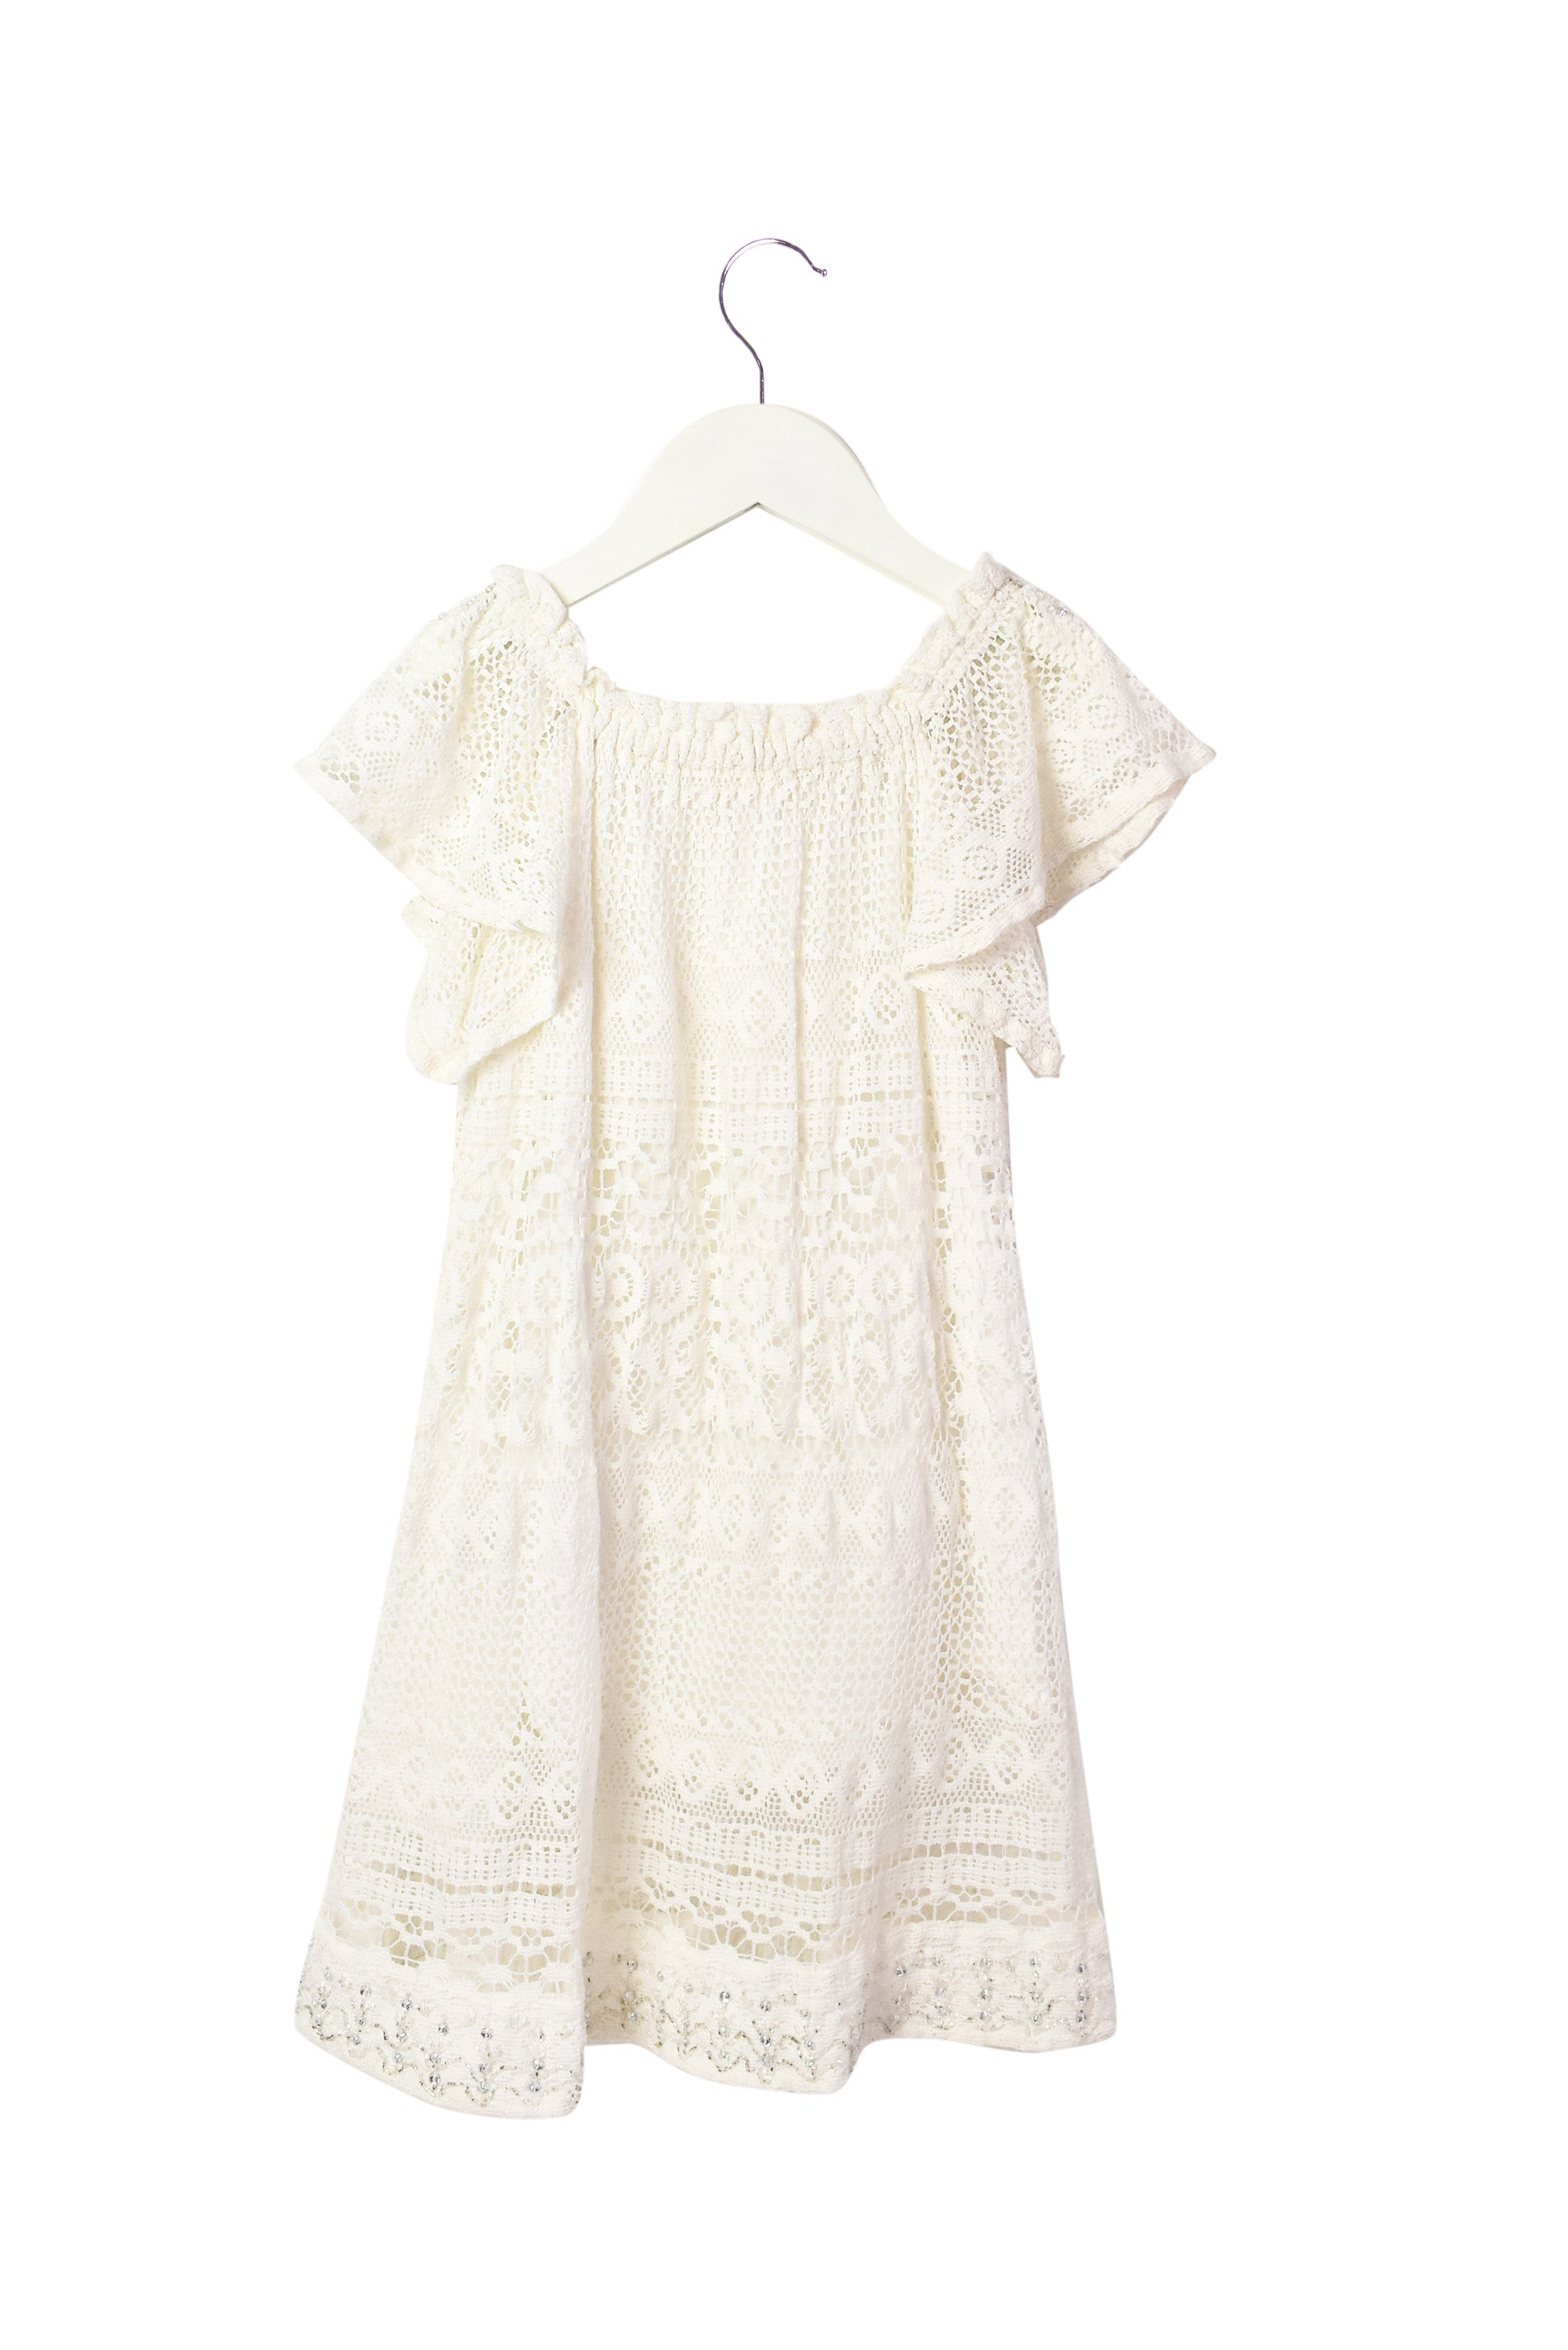 10005037 Tutu du Monde Kids~Dress 4-5T, Tutu du Monde Retykle | Online Baby & Kids Clothing Hong Kong